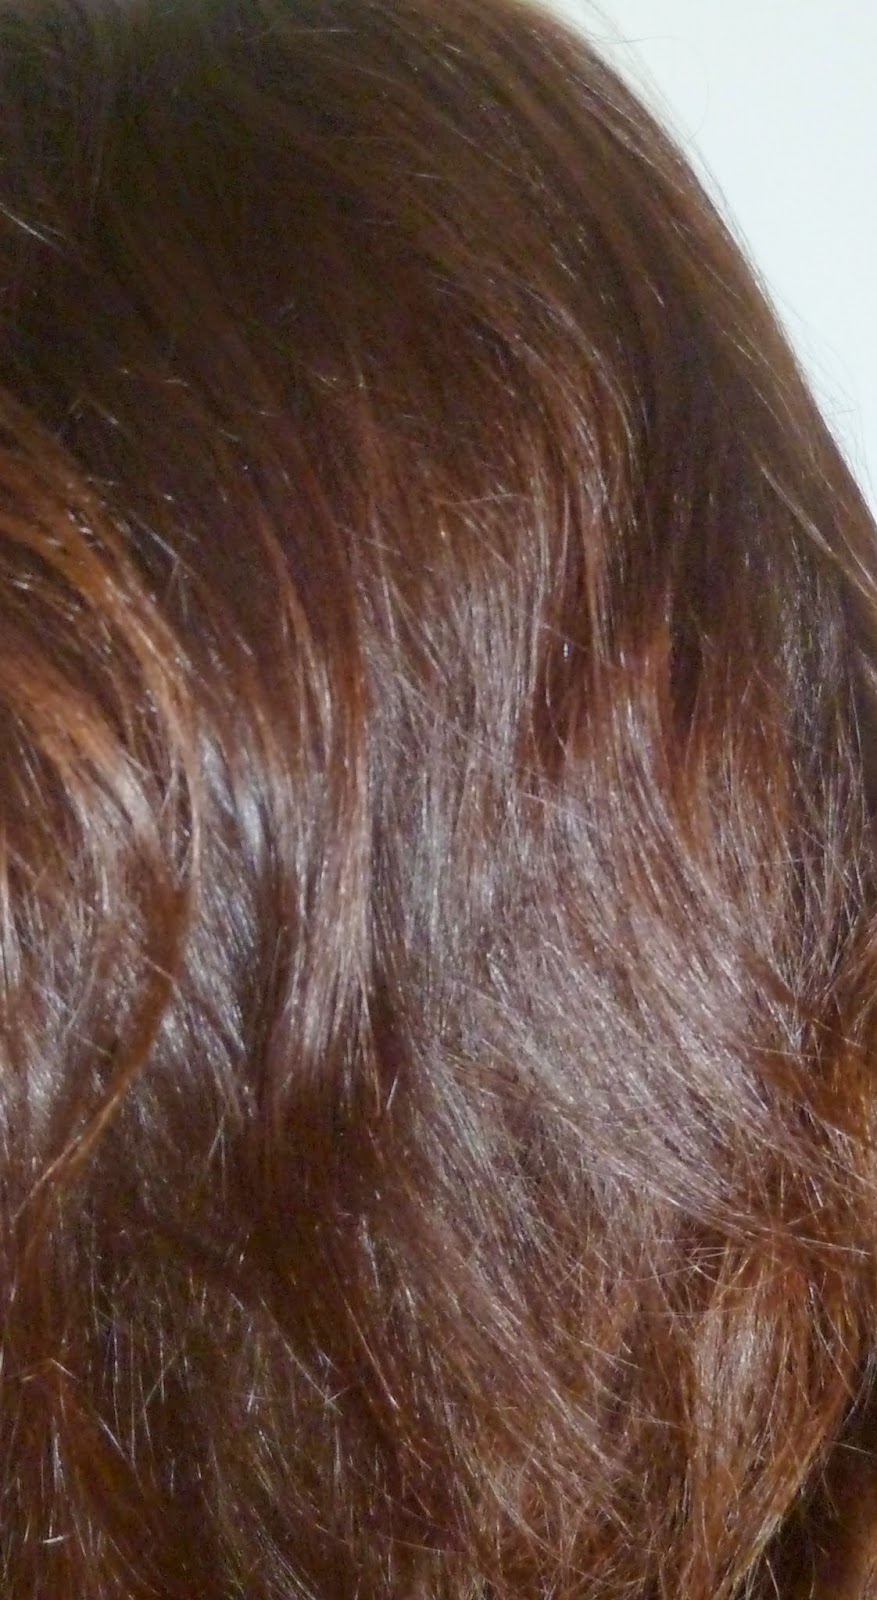 gnralement je moffre toujours une sance chez le coiffeur la rentre malheureusement cette anne en raison de quelques achats dispendieux haul de - Coloration Gloss Chocolat